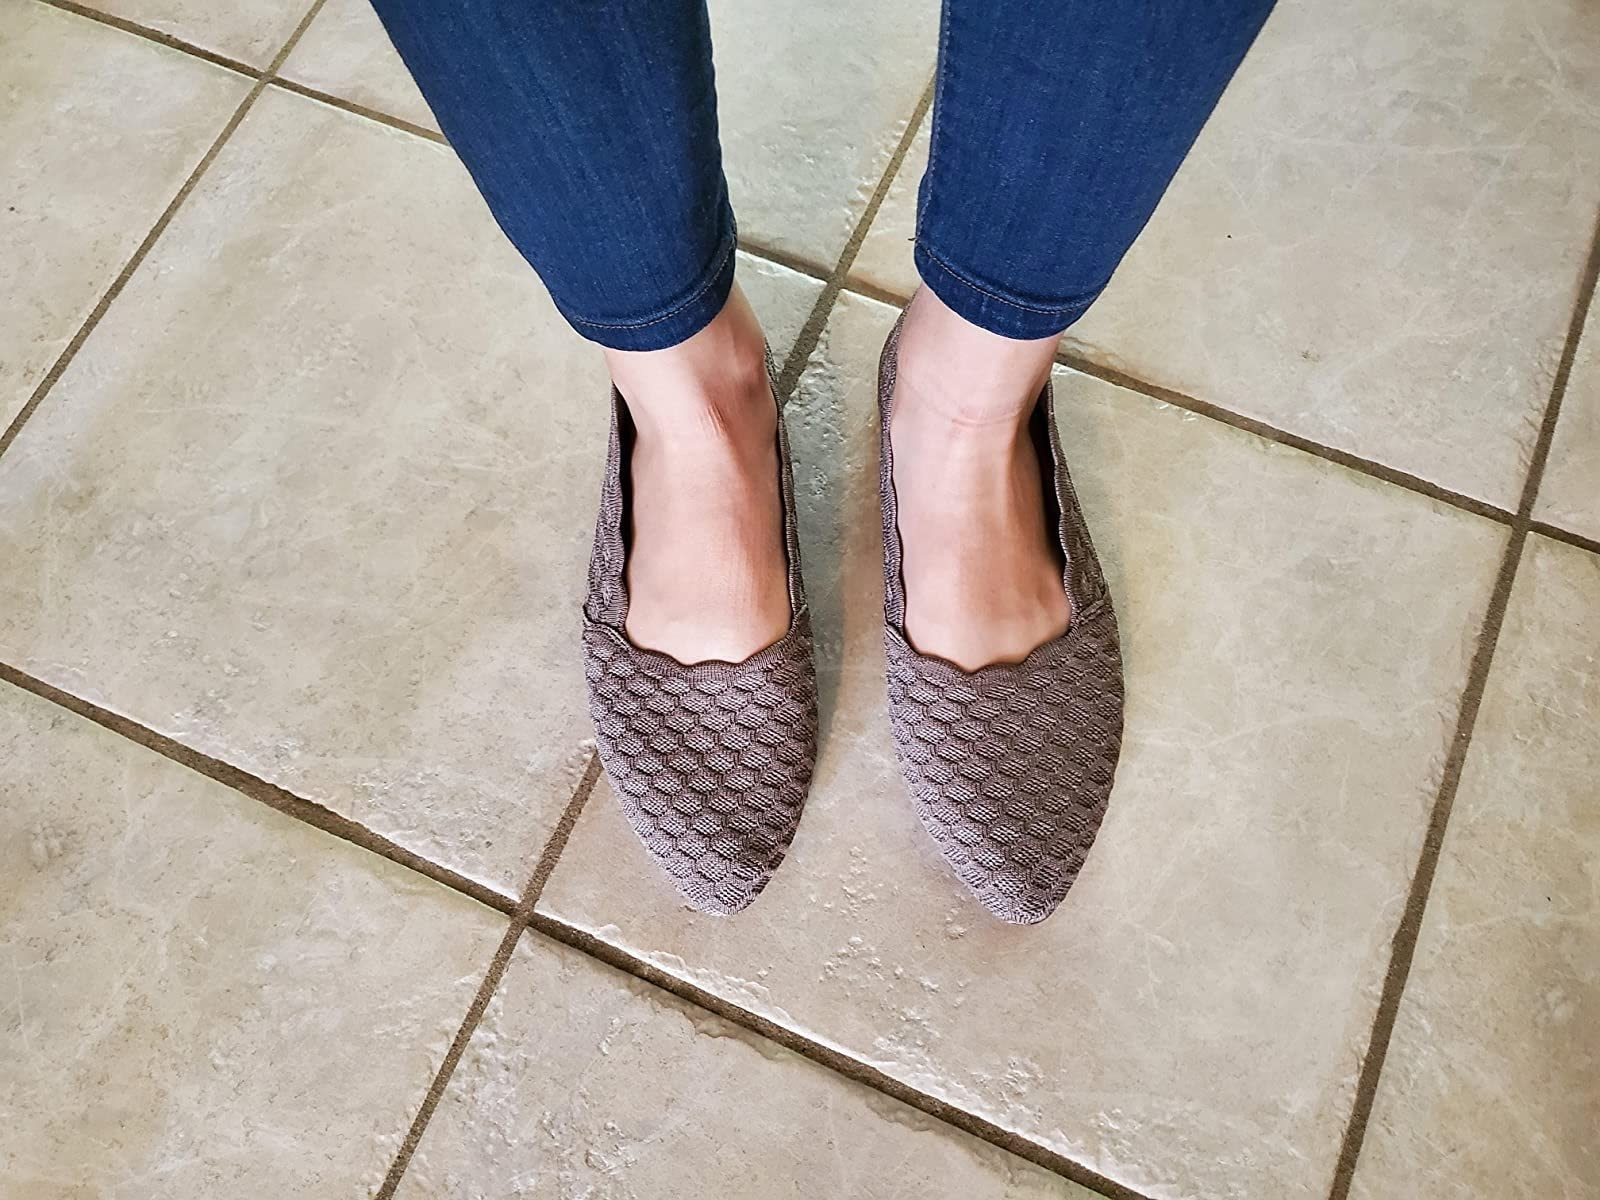 reviewer in the almond-toe, scallop-pattern flats in a dark taupe